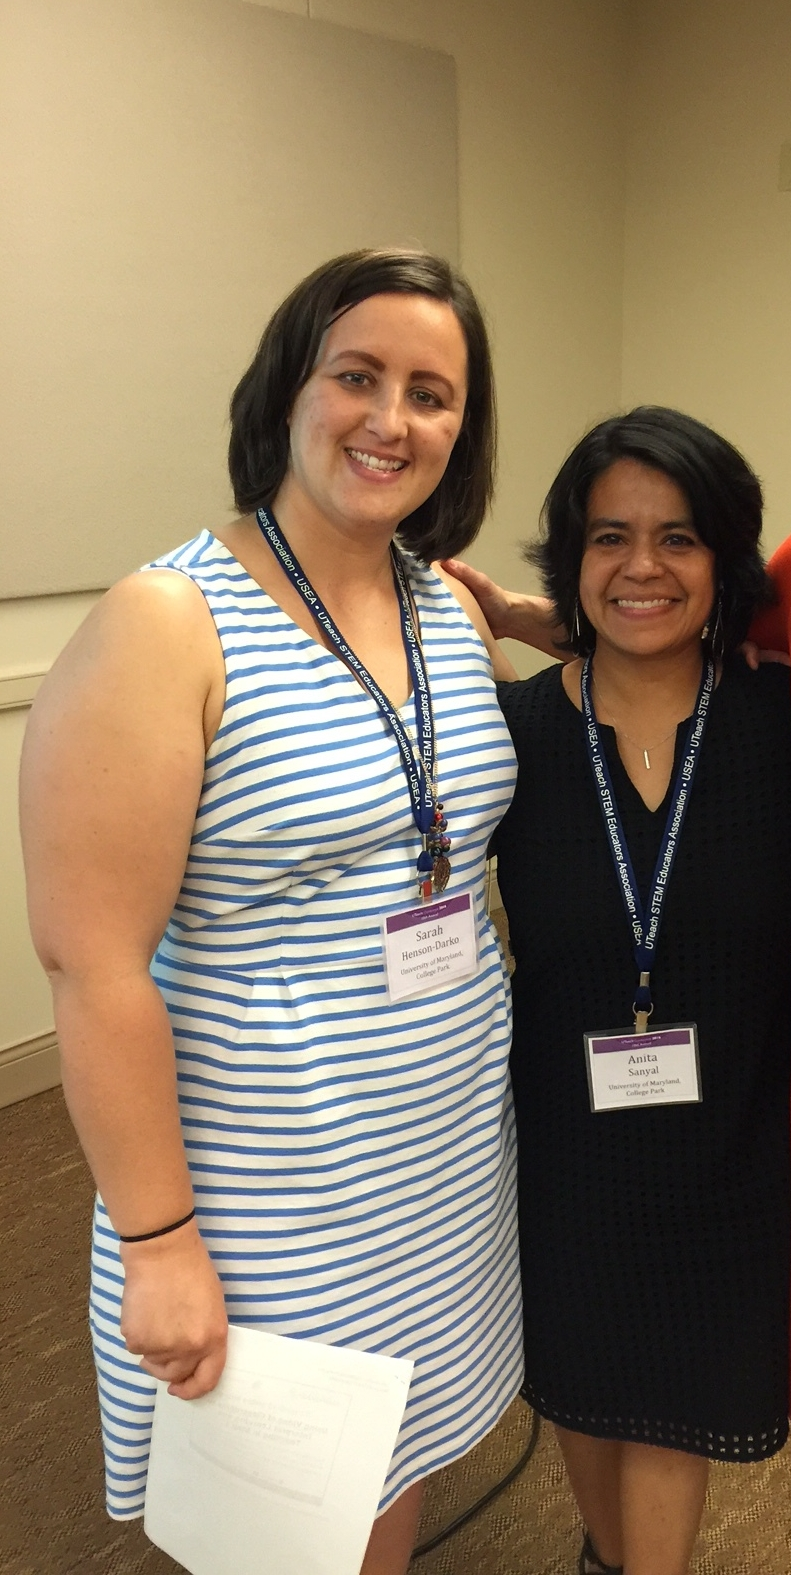 Photo: left to right, science Master Teachers, Sarah Henson-Darko, and Anita Sanyal